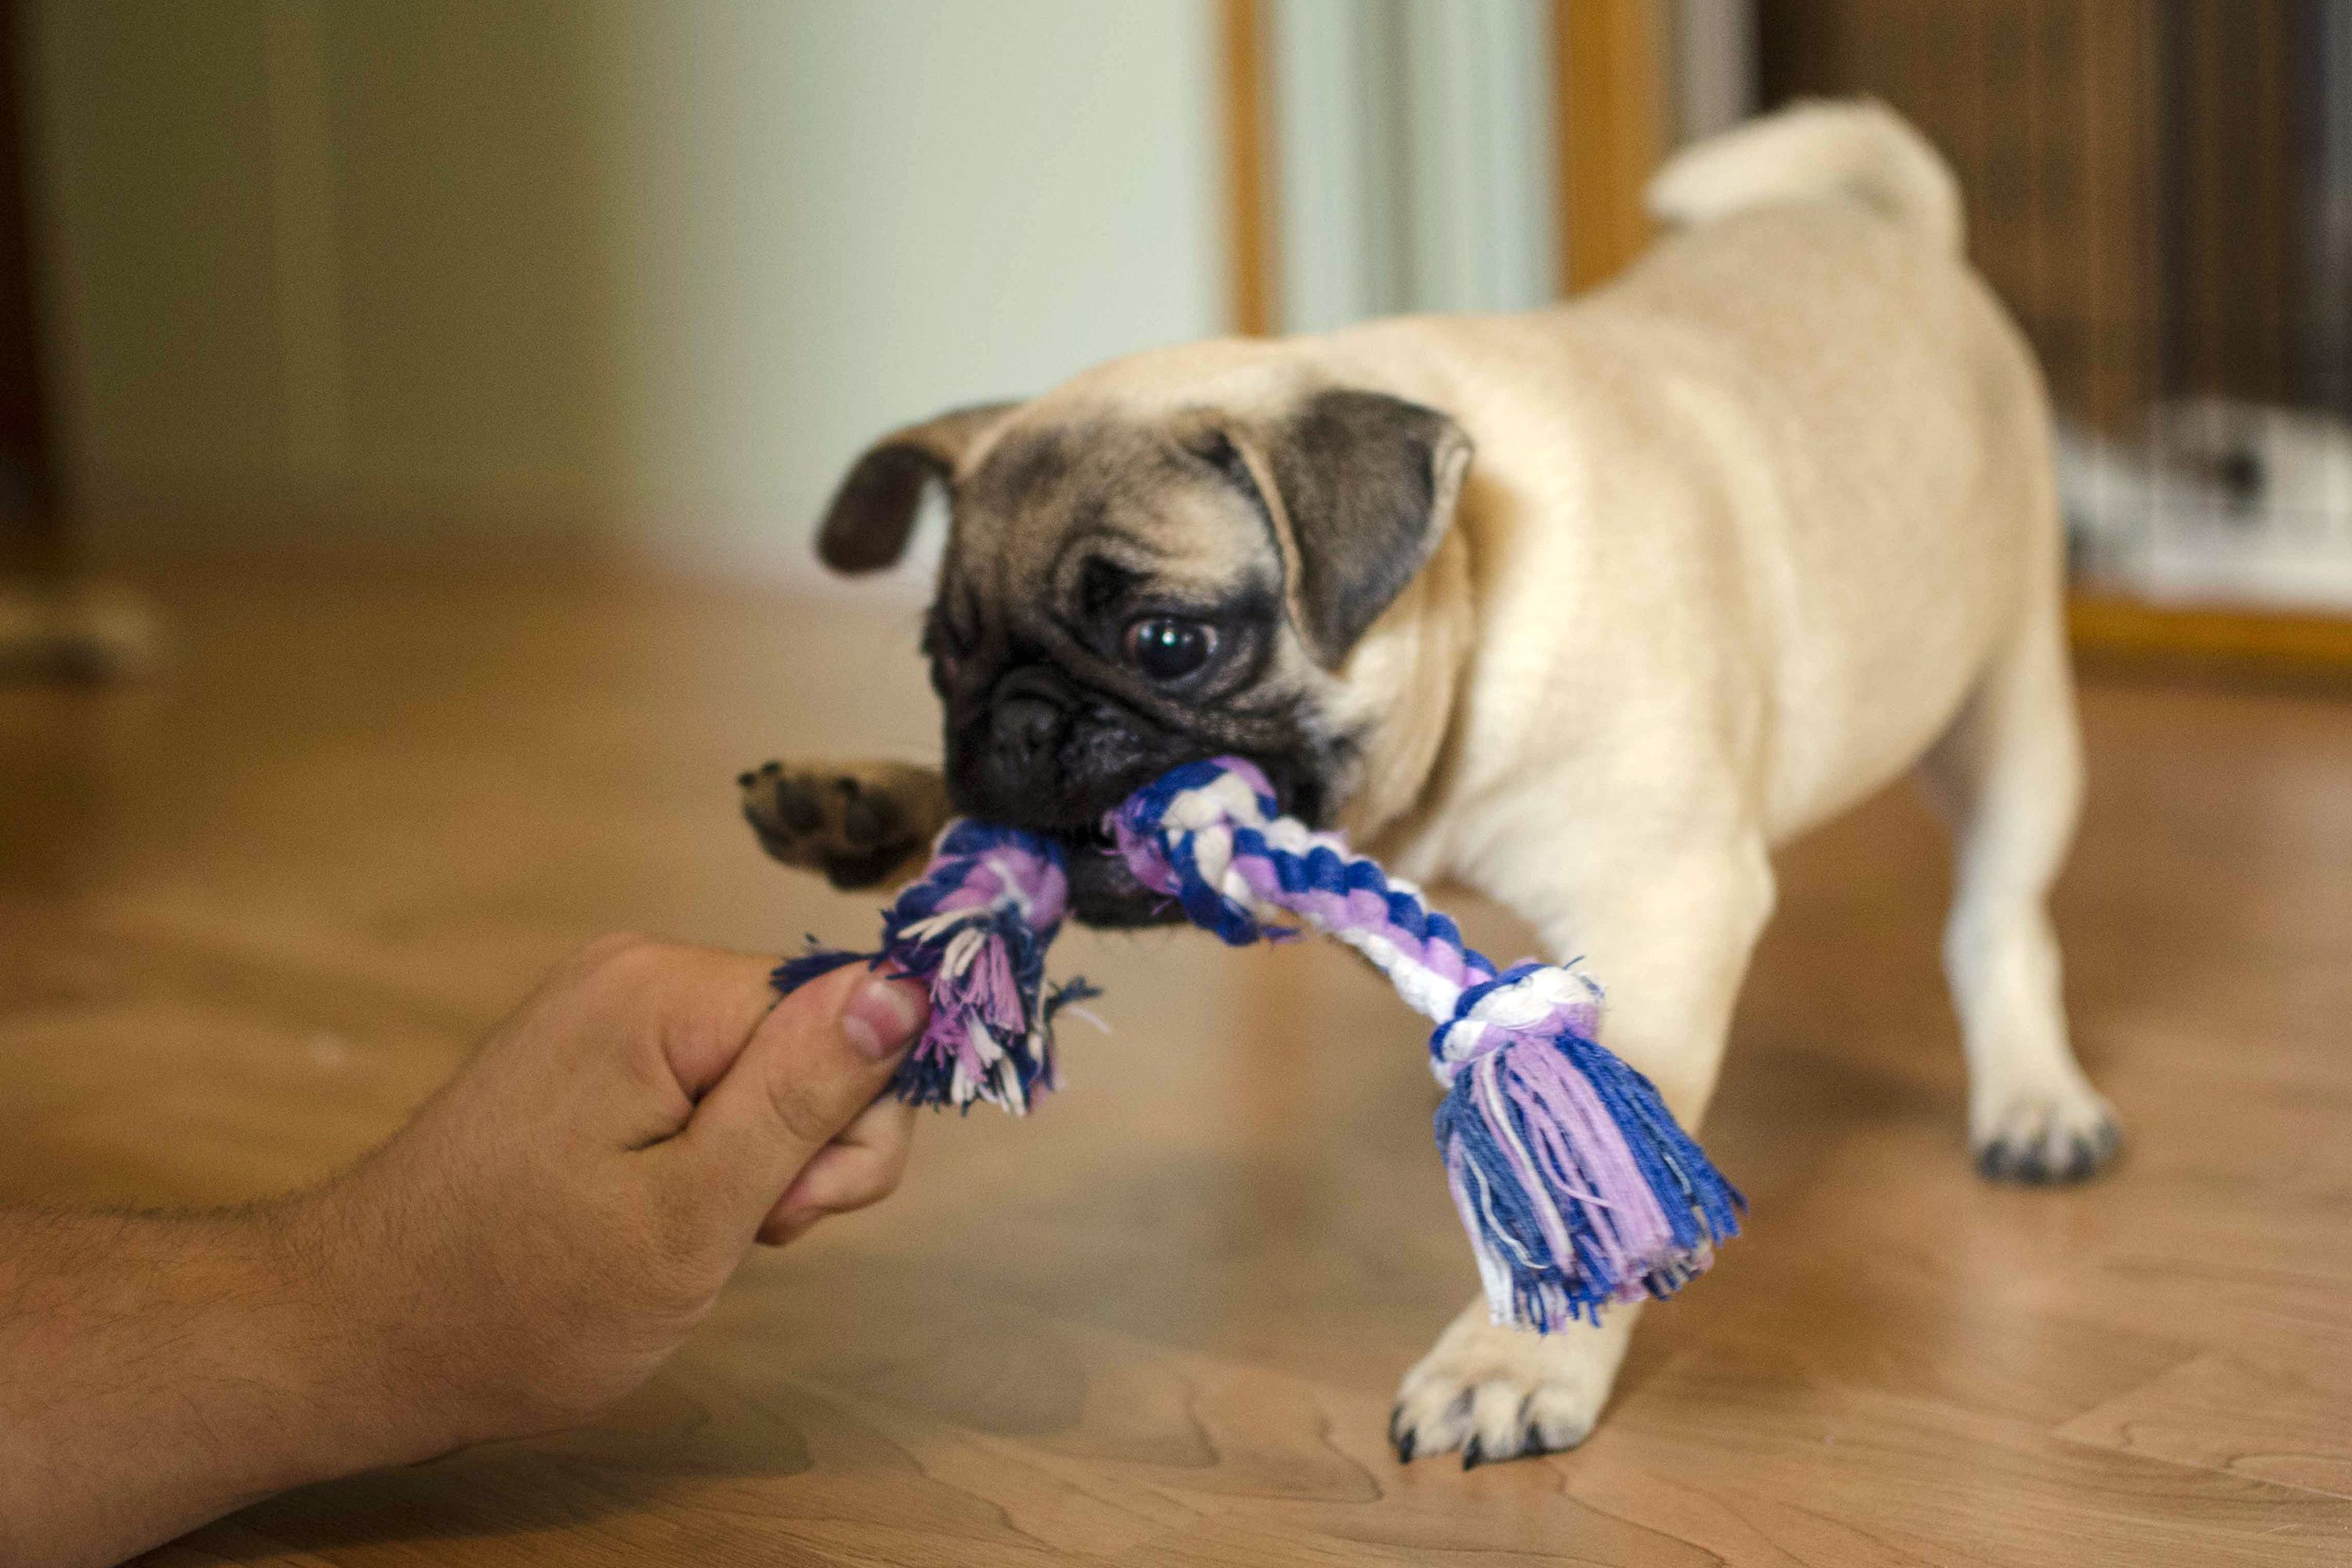 How Long Does Puppy Teething Last Cuteness Dog Urine Puppy Teething Aggressive Dog